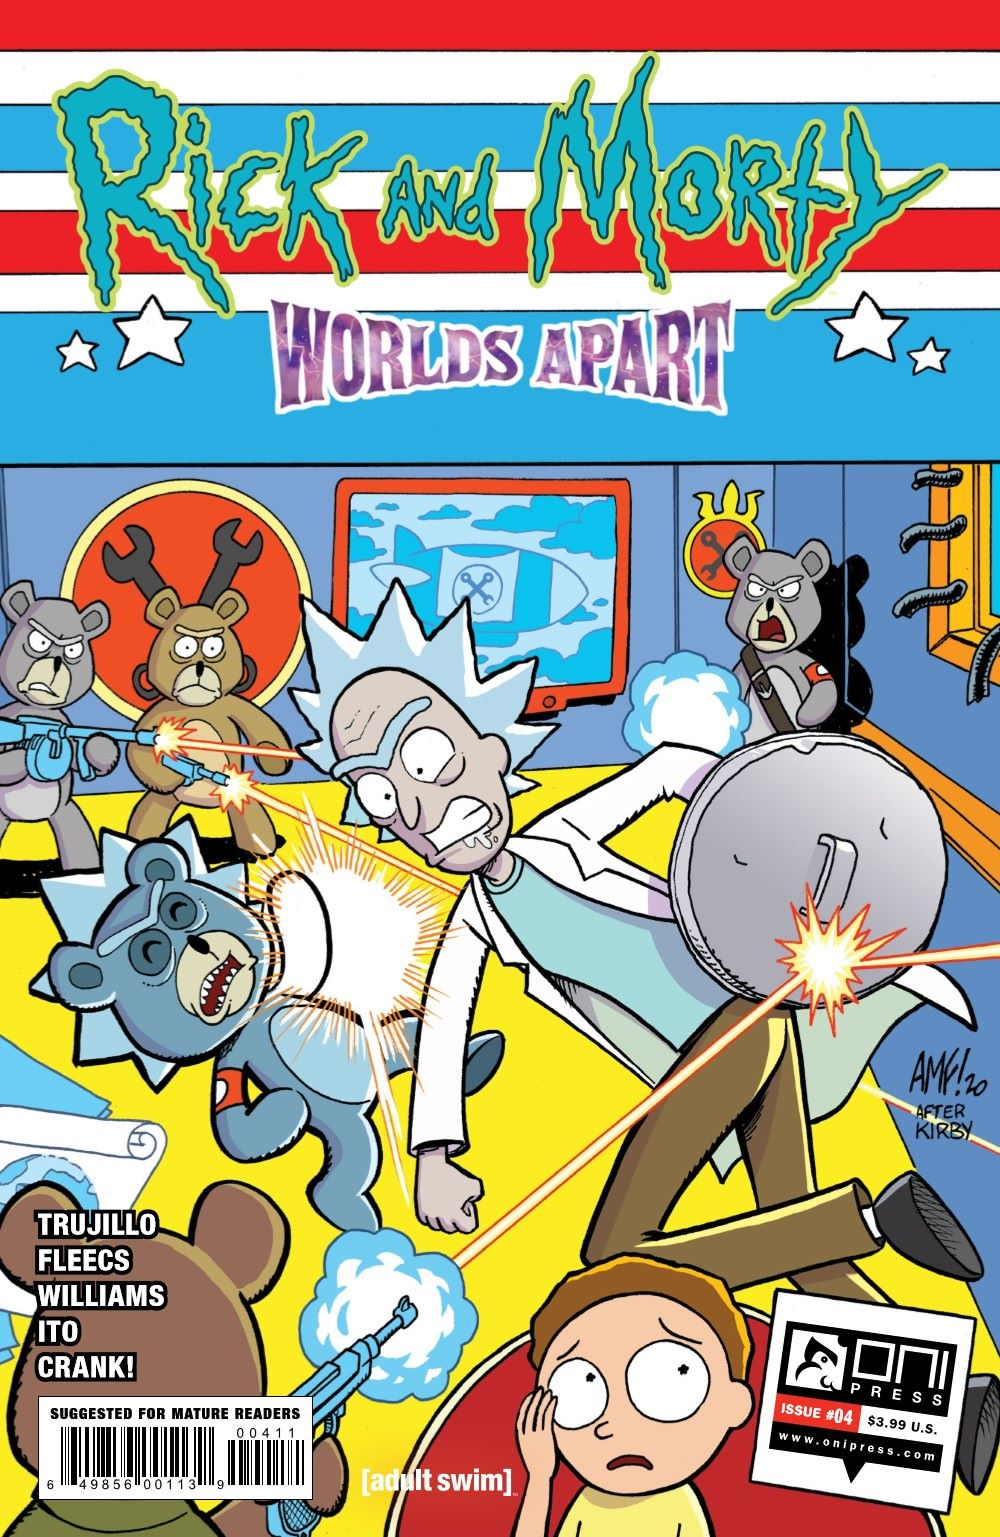 RICKMORTY-WORLDSAPART-4-REFERENCE-01 ComicList Previews: RICK AND MORTY WORLDS APART #4